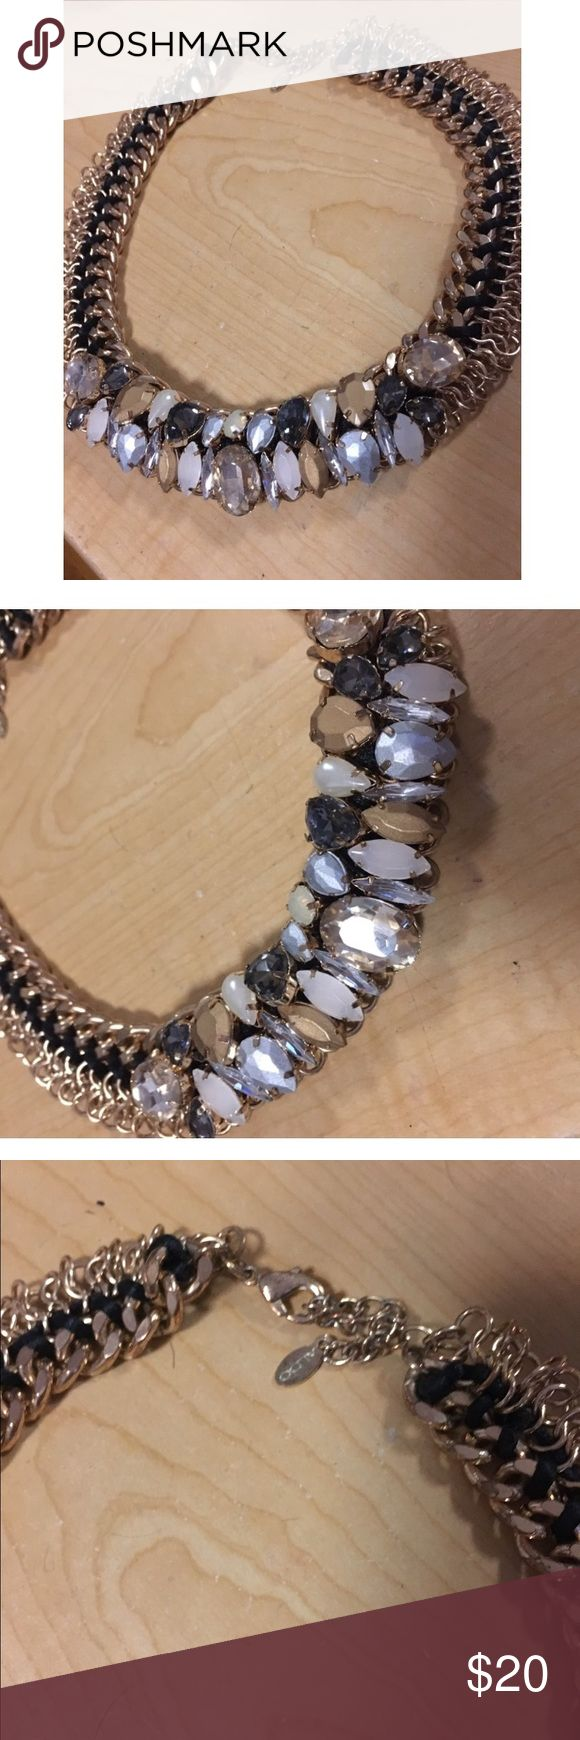 Aldo necklace Gold with neutral tone stones. Great condition Aldo Jewelry Necklaces